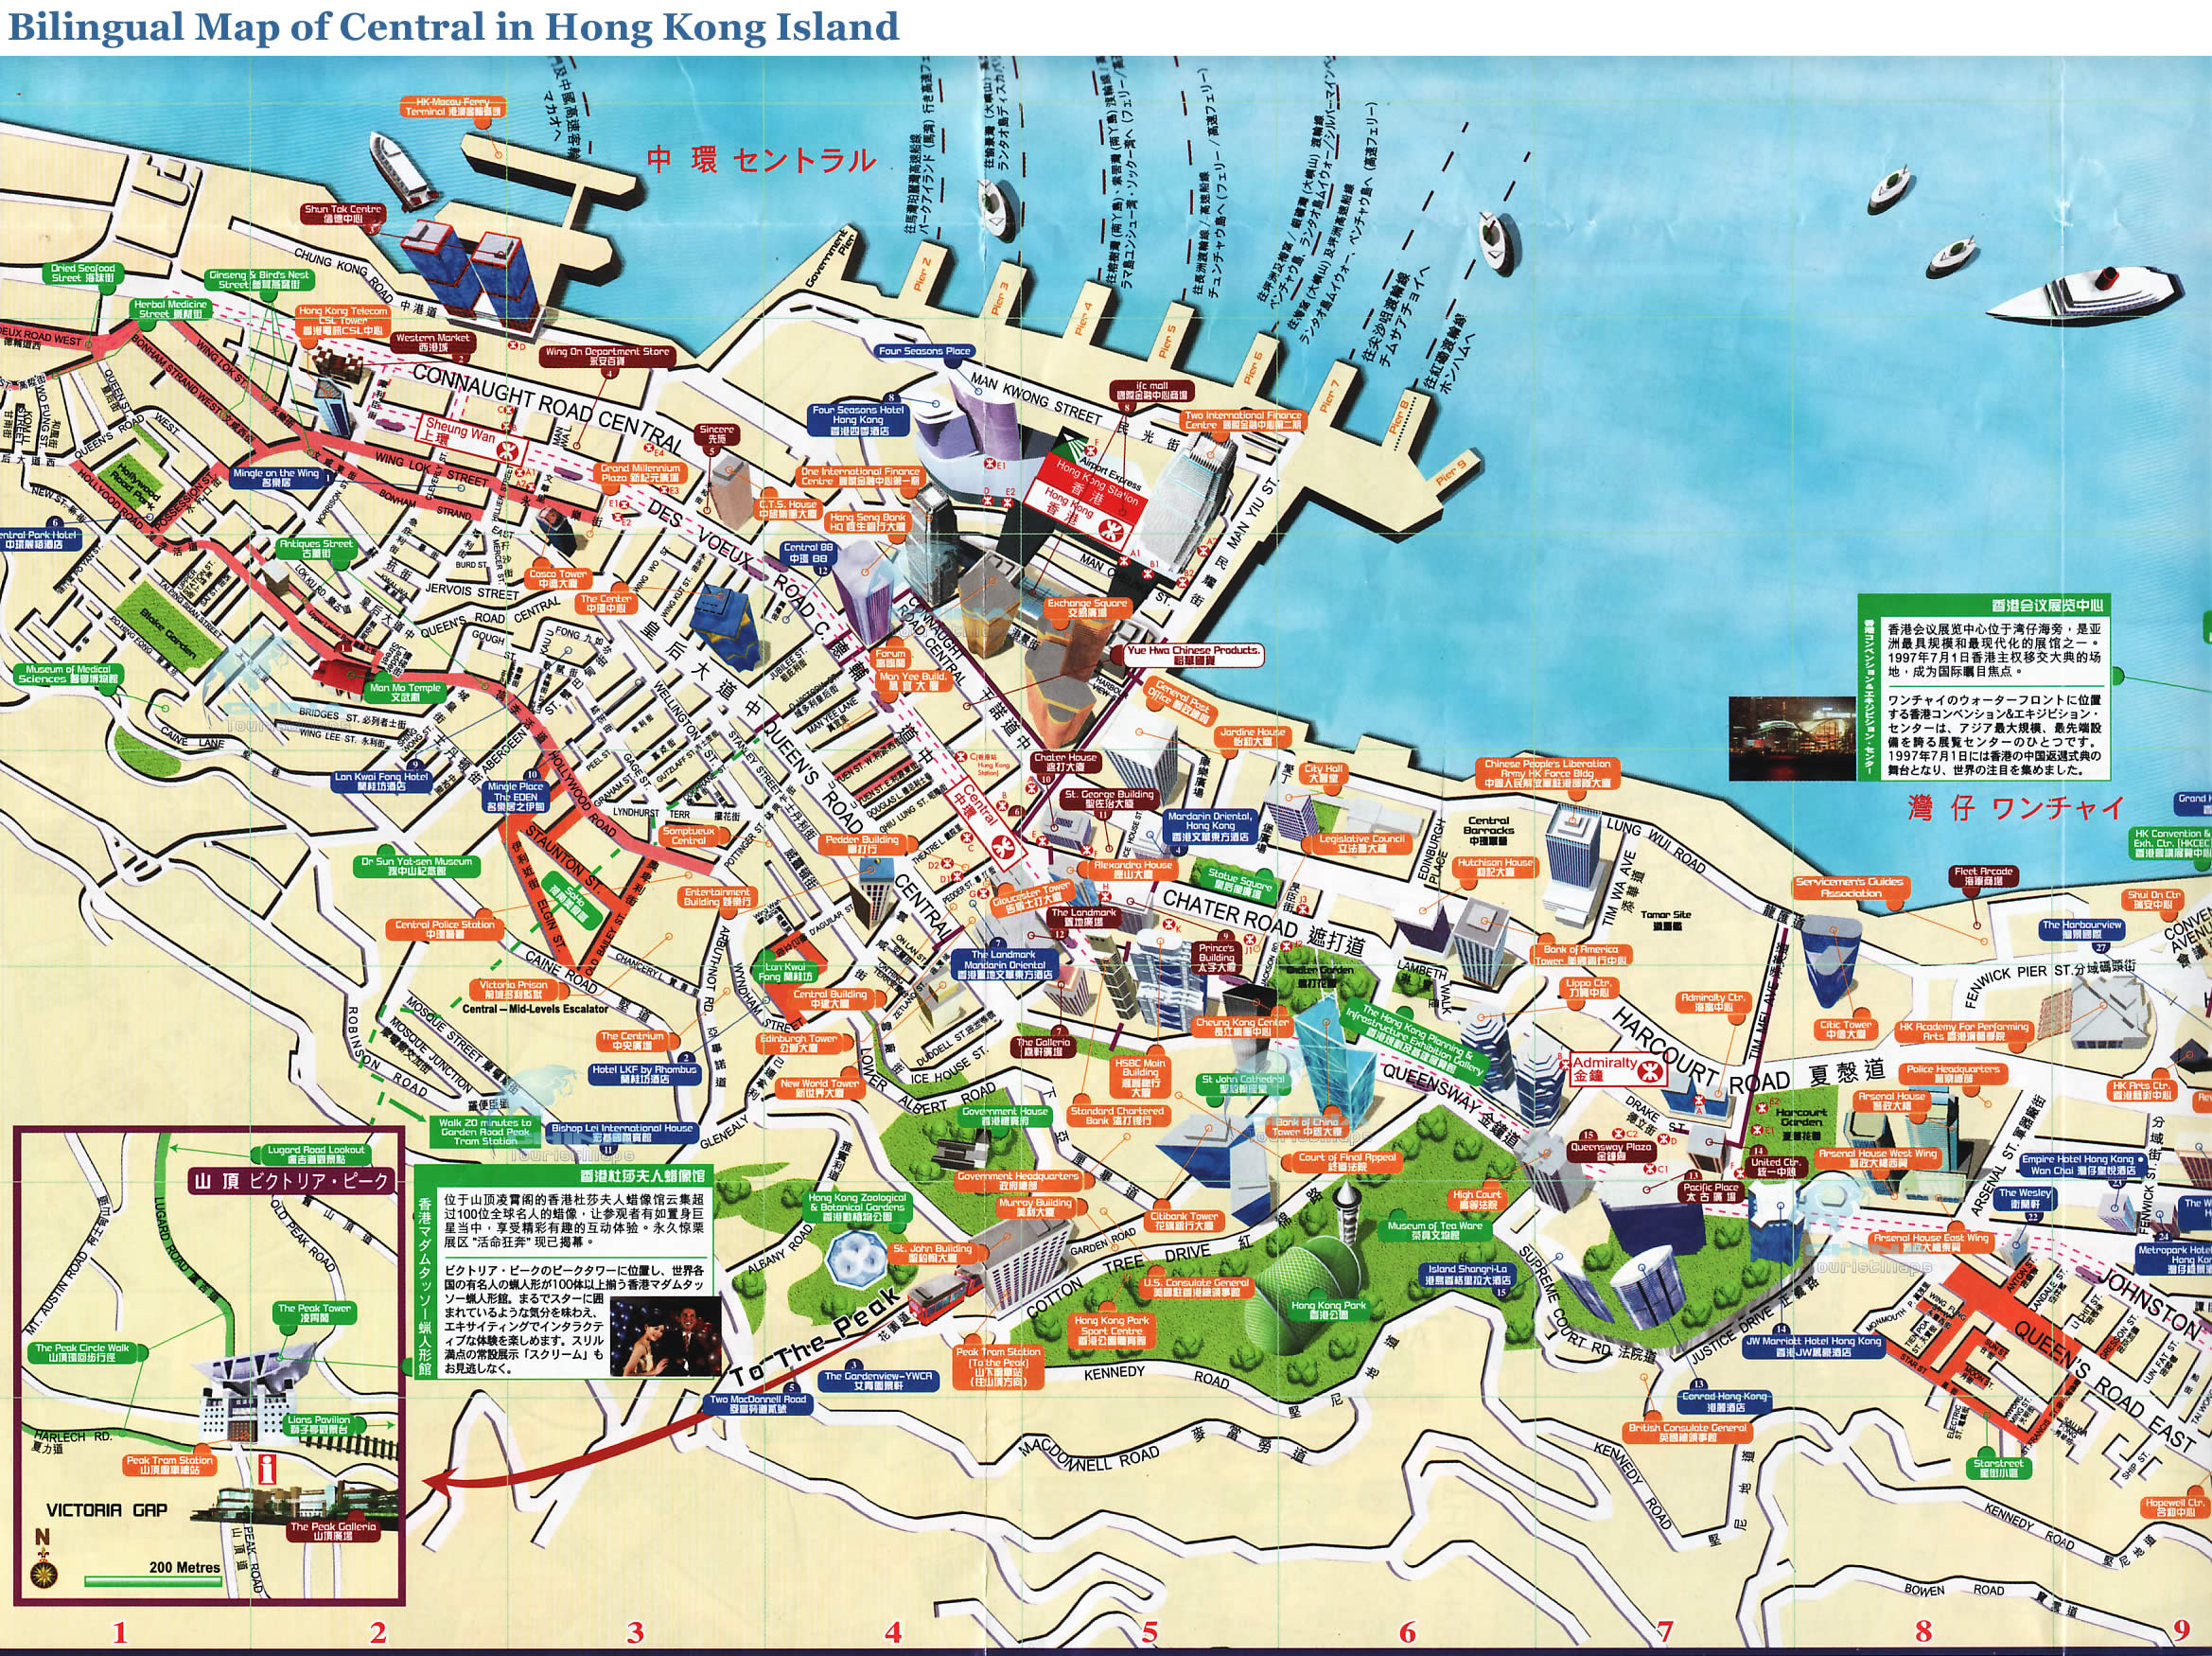 Hong Kong Central Map Detailed Hong Kong Central – Hong Kong Map For Tourist